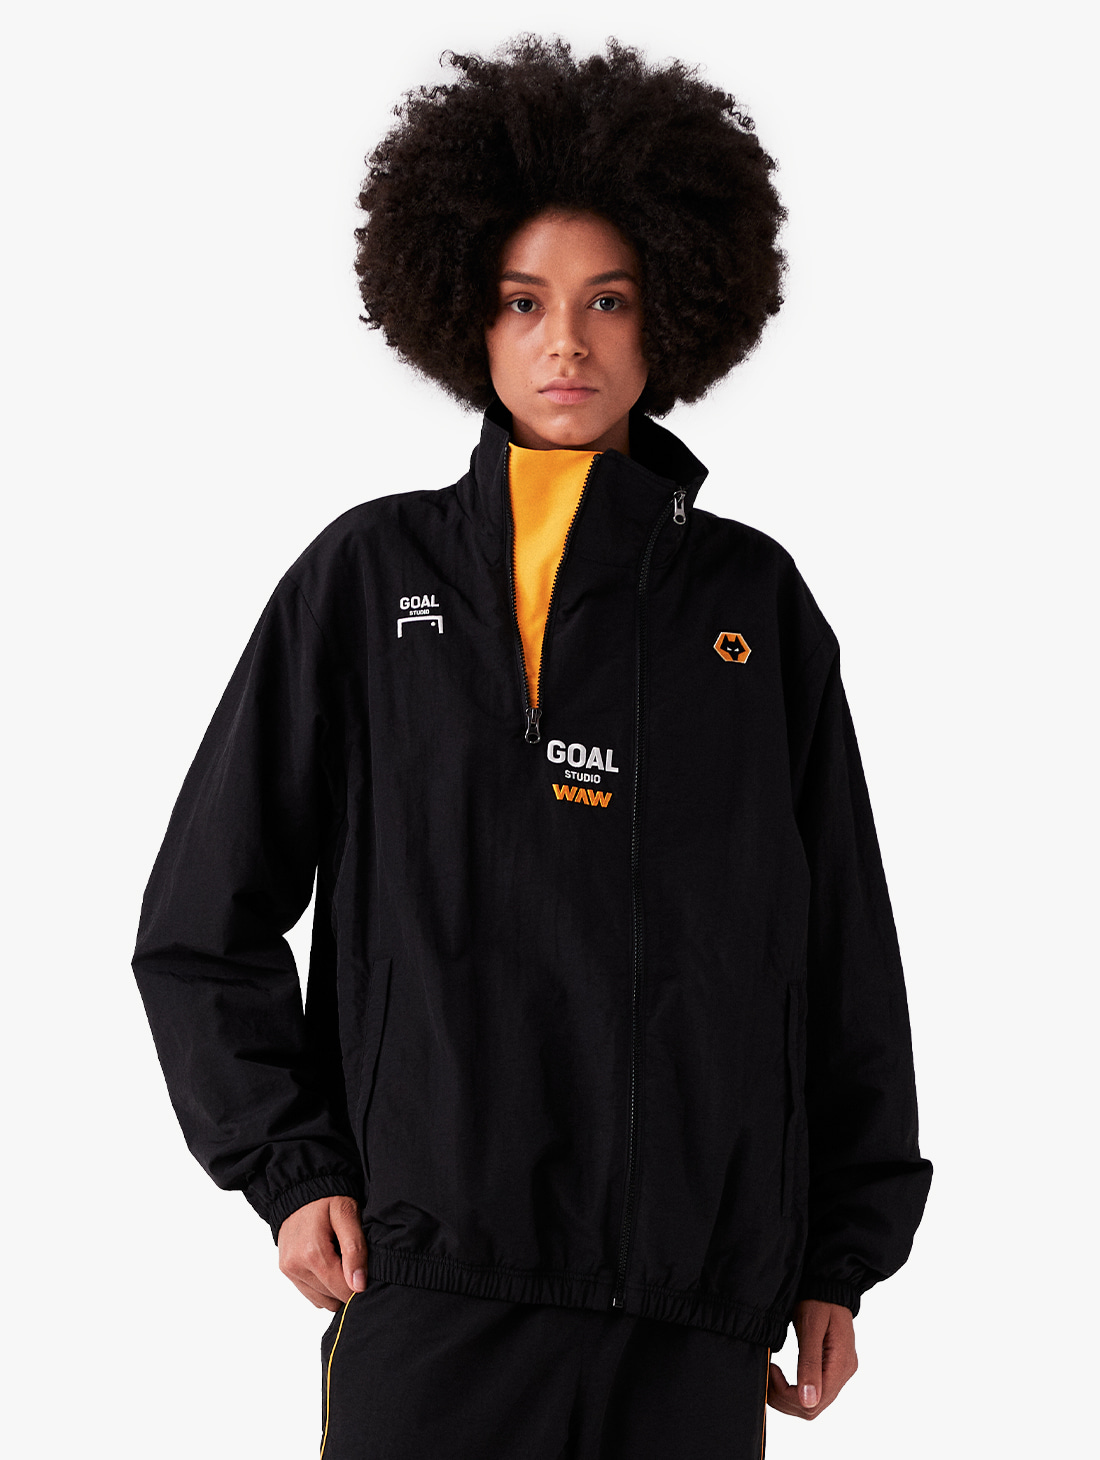 GOALSTUDIO [PRE-ORDER 10% OFF] WWFC ASYMMETRIC ZIP-UP JACKET